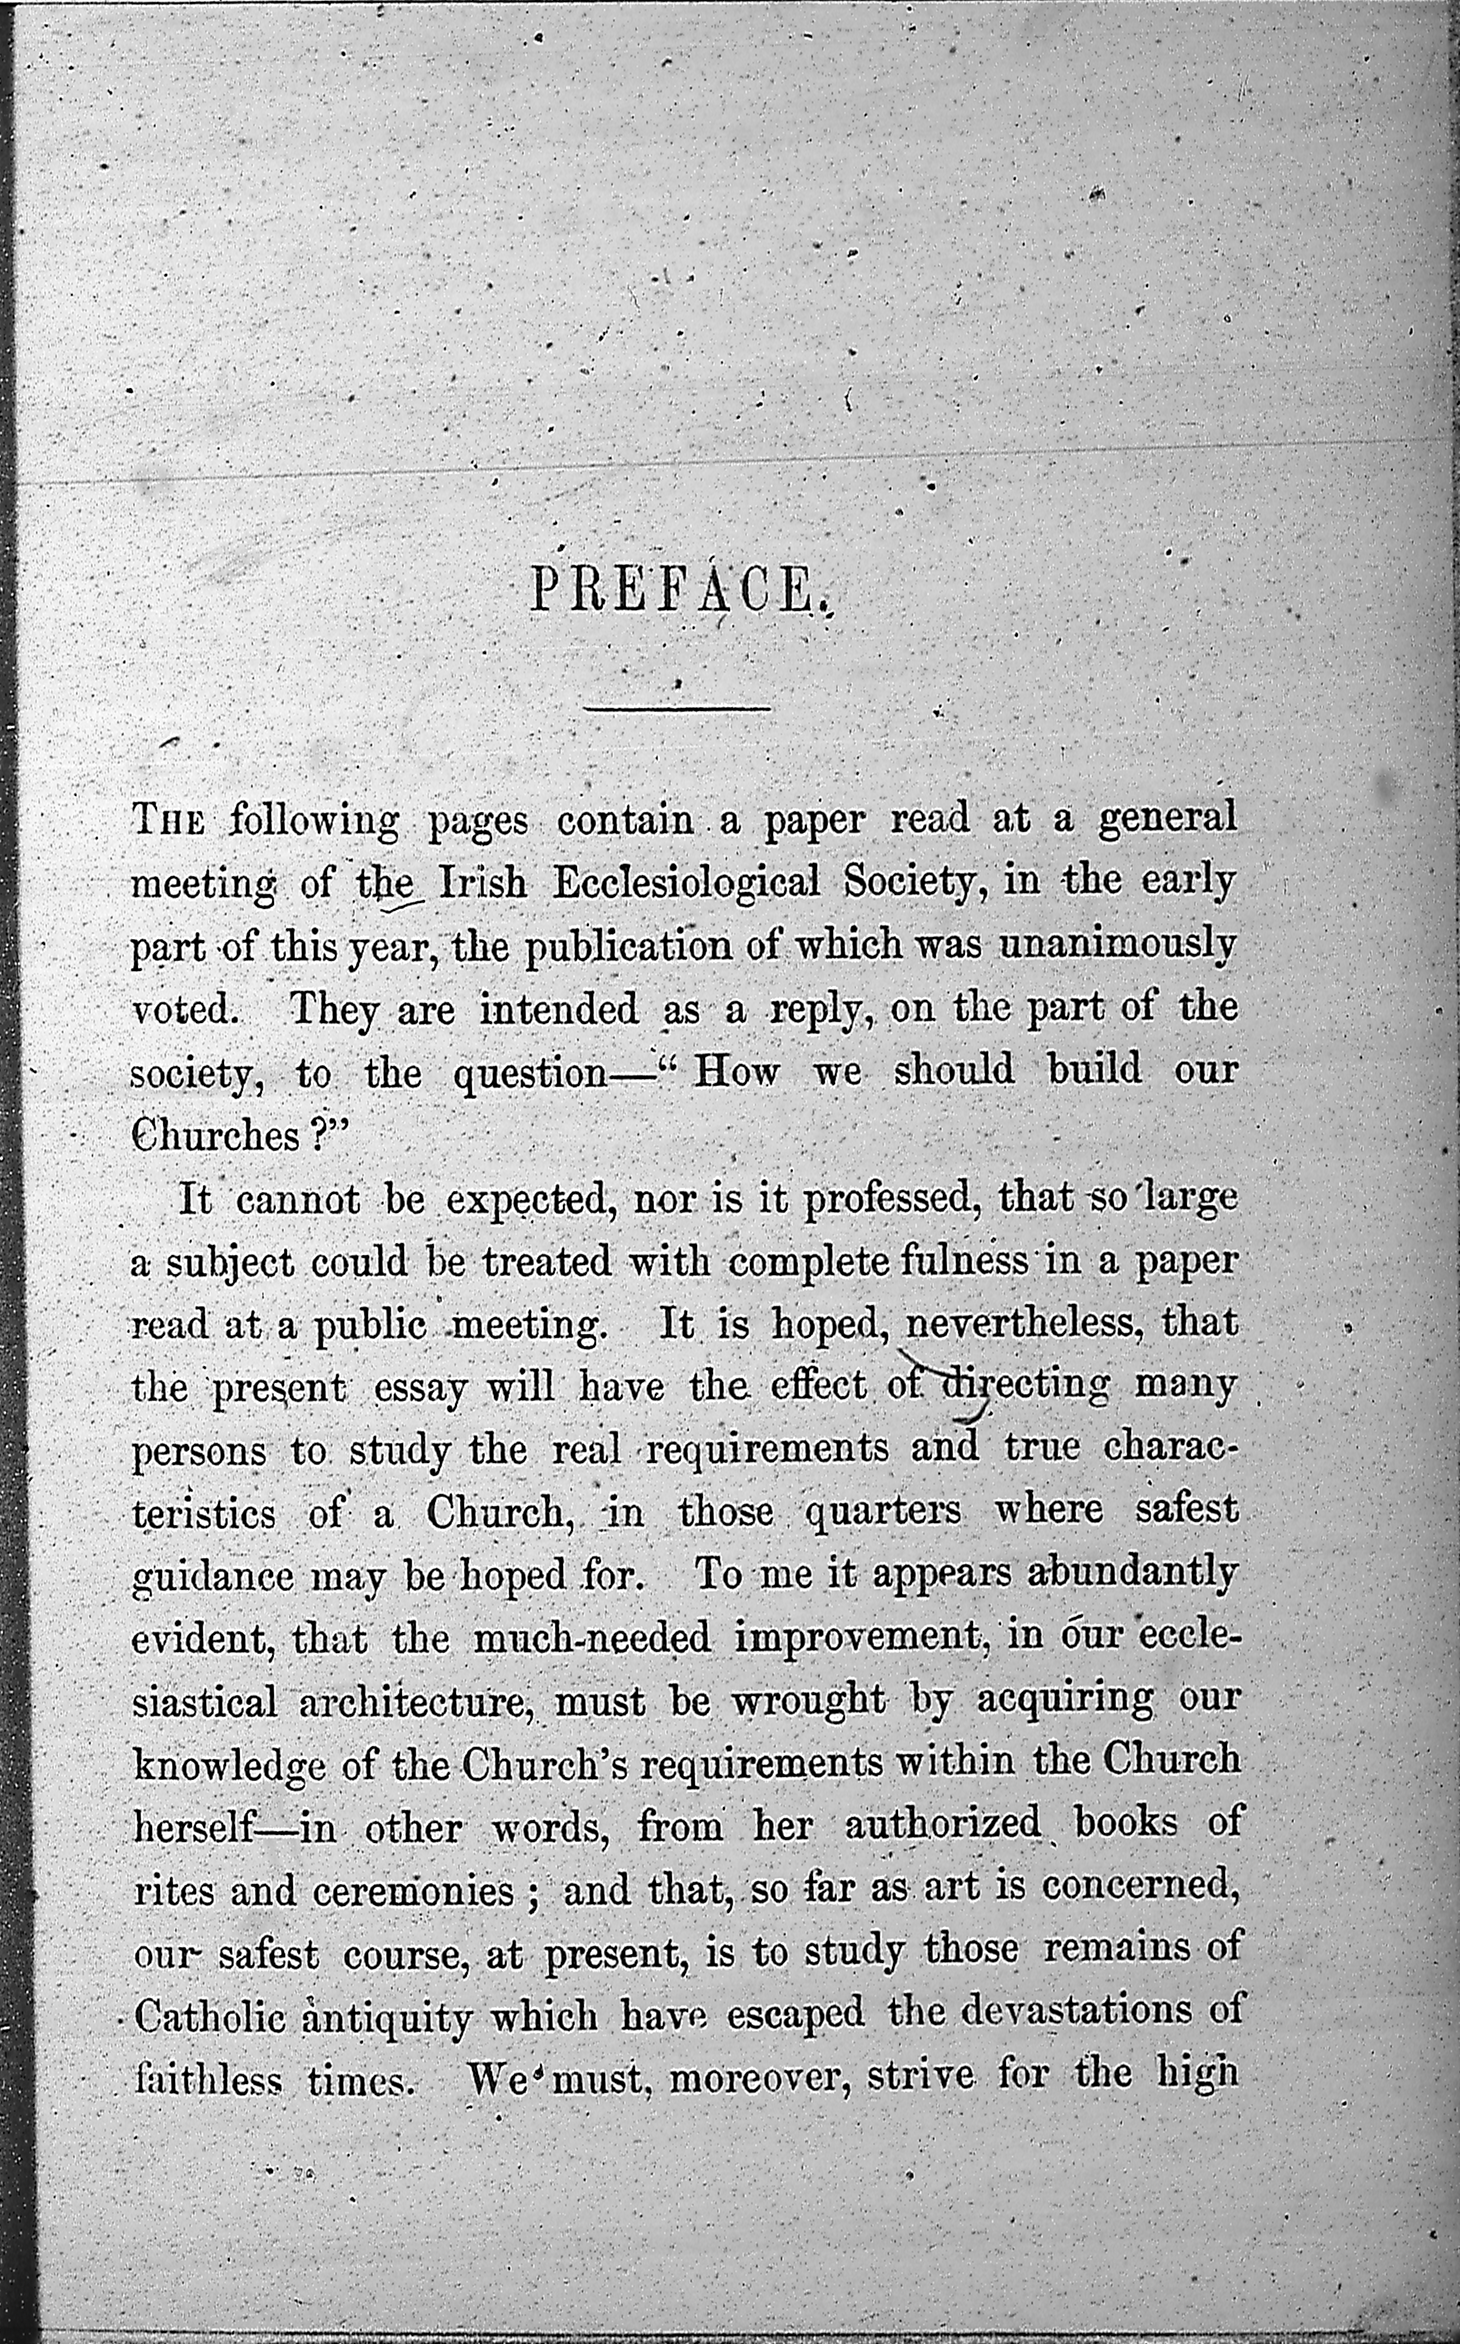 Suggestions on the Arrangement and Characteristics of Parish Churches Author J. J. McCarthy, drawings by Patrick Hanlon Start this Book Publisher James